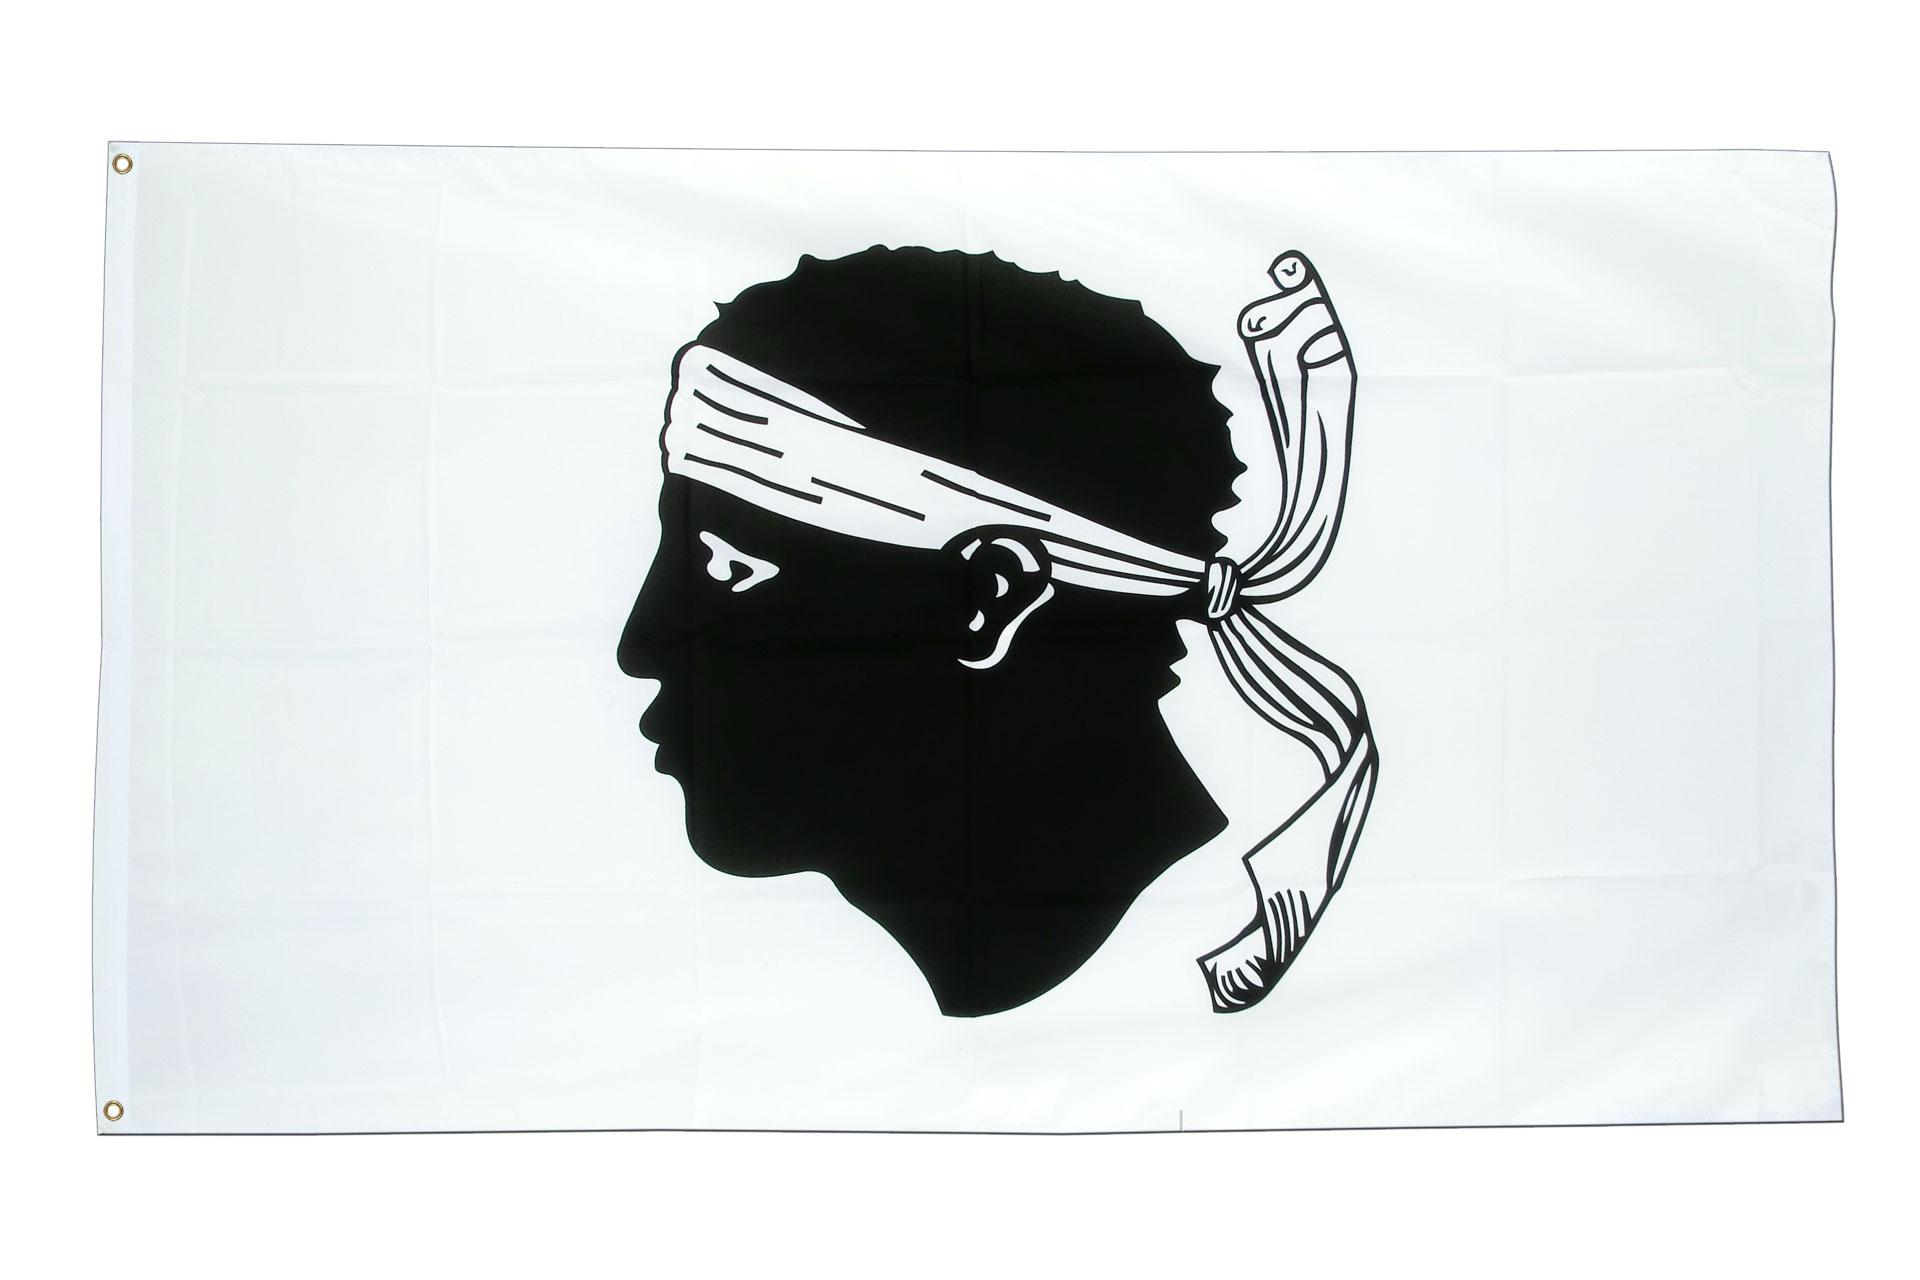 Buy Corsica Flag - 3x5 ft (90x150 cm) - Royal-Flags